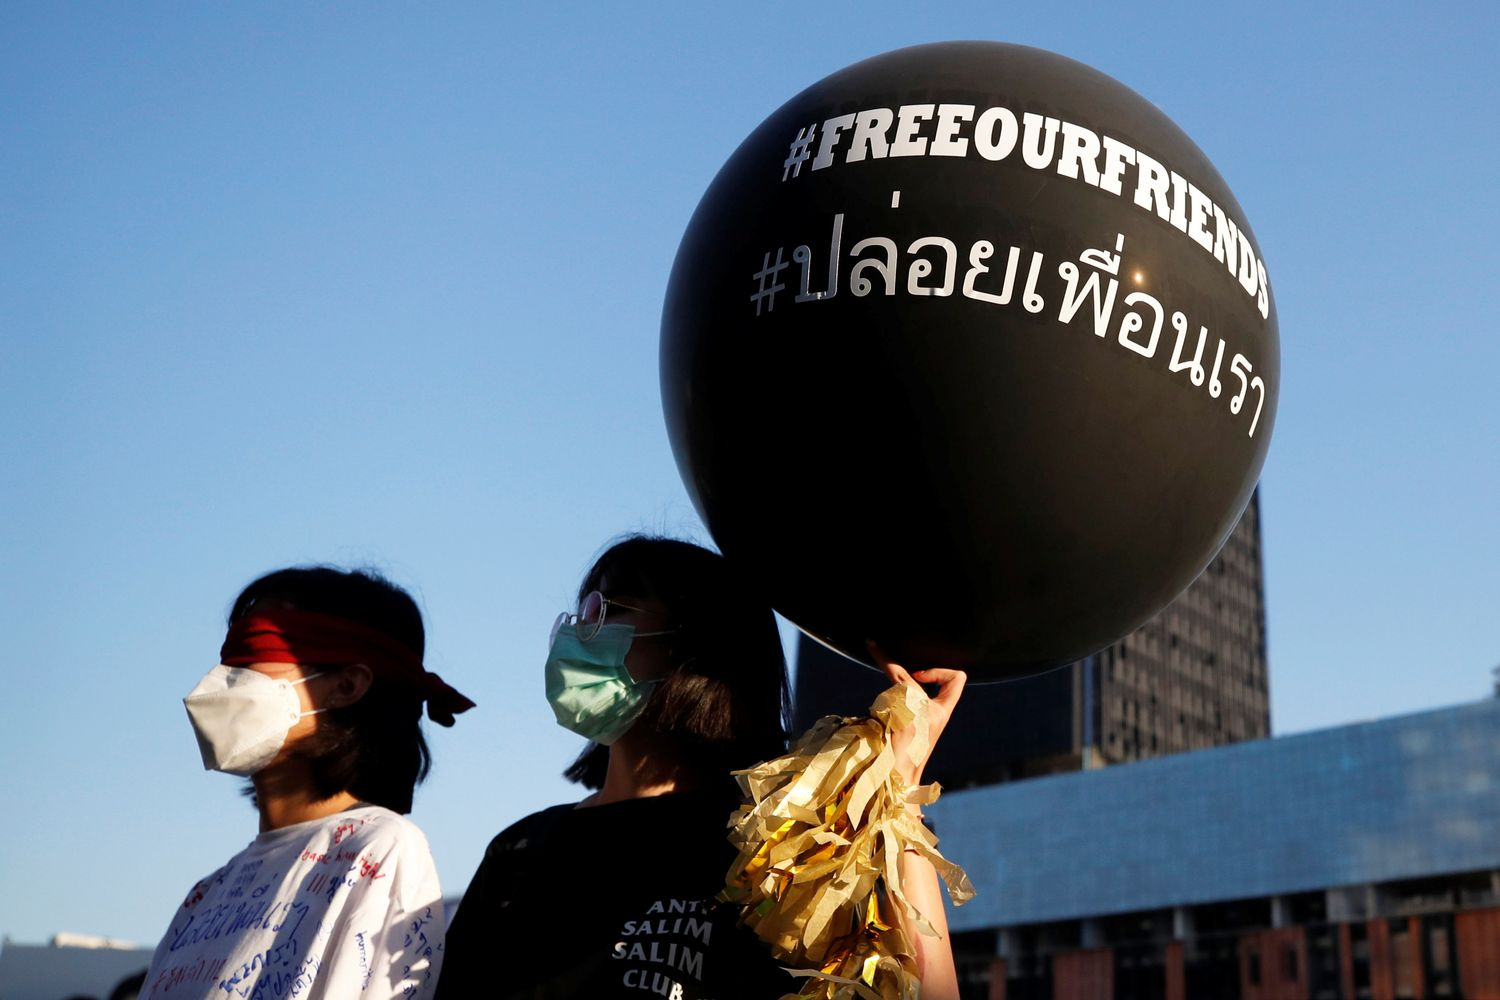 Pro-democracy protesters, one wearing a blindfold, display a hashtagged balloon at a rally demanding the release of arrested protest leaders and the abolition of Section 112 lese majeste law, in Bangkok on Monday. (Reuters photo)